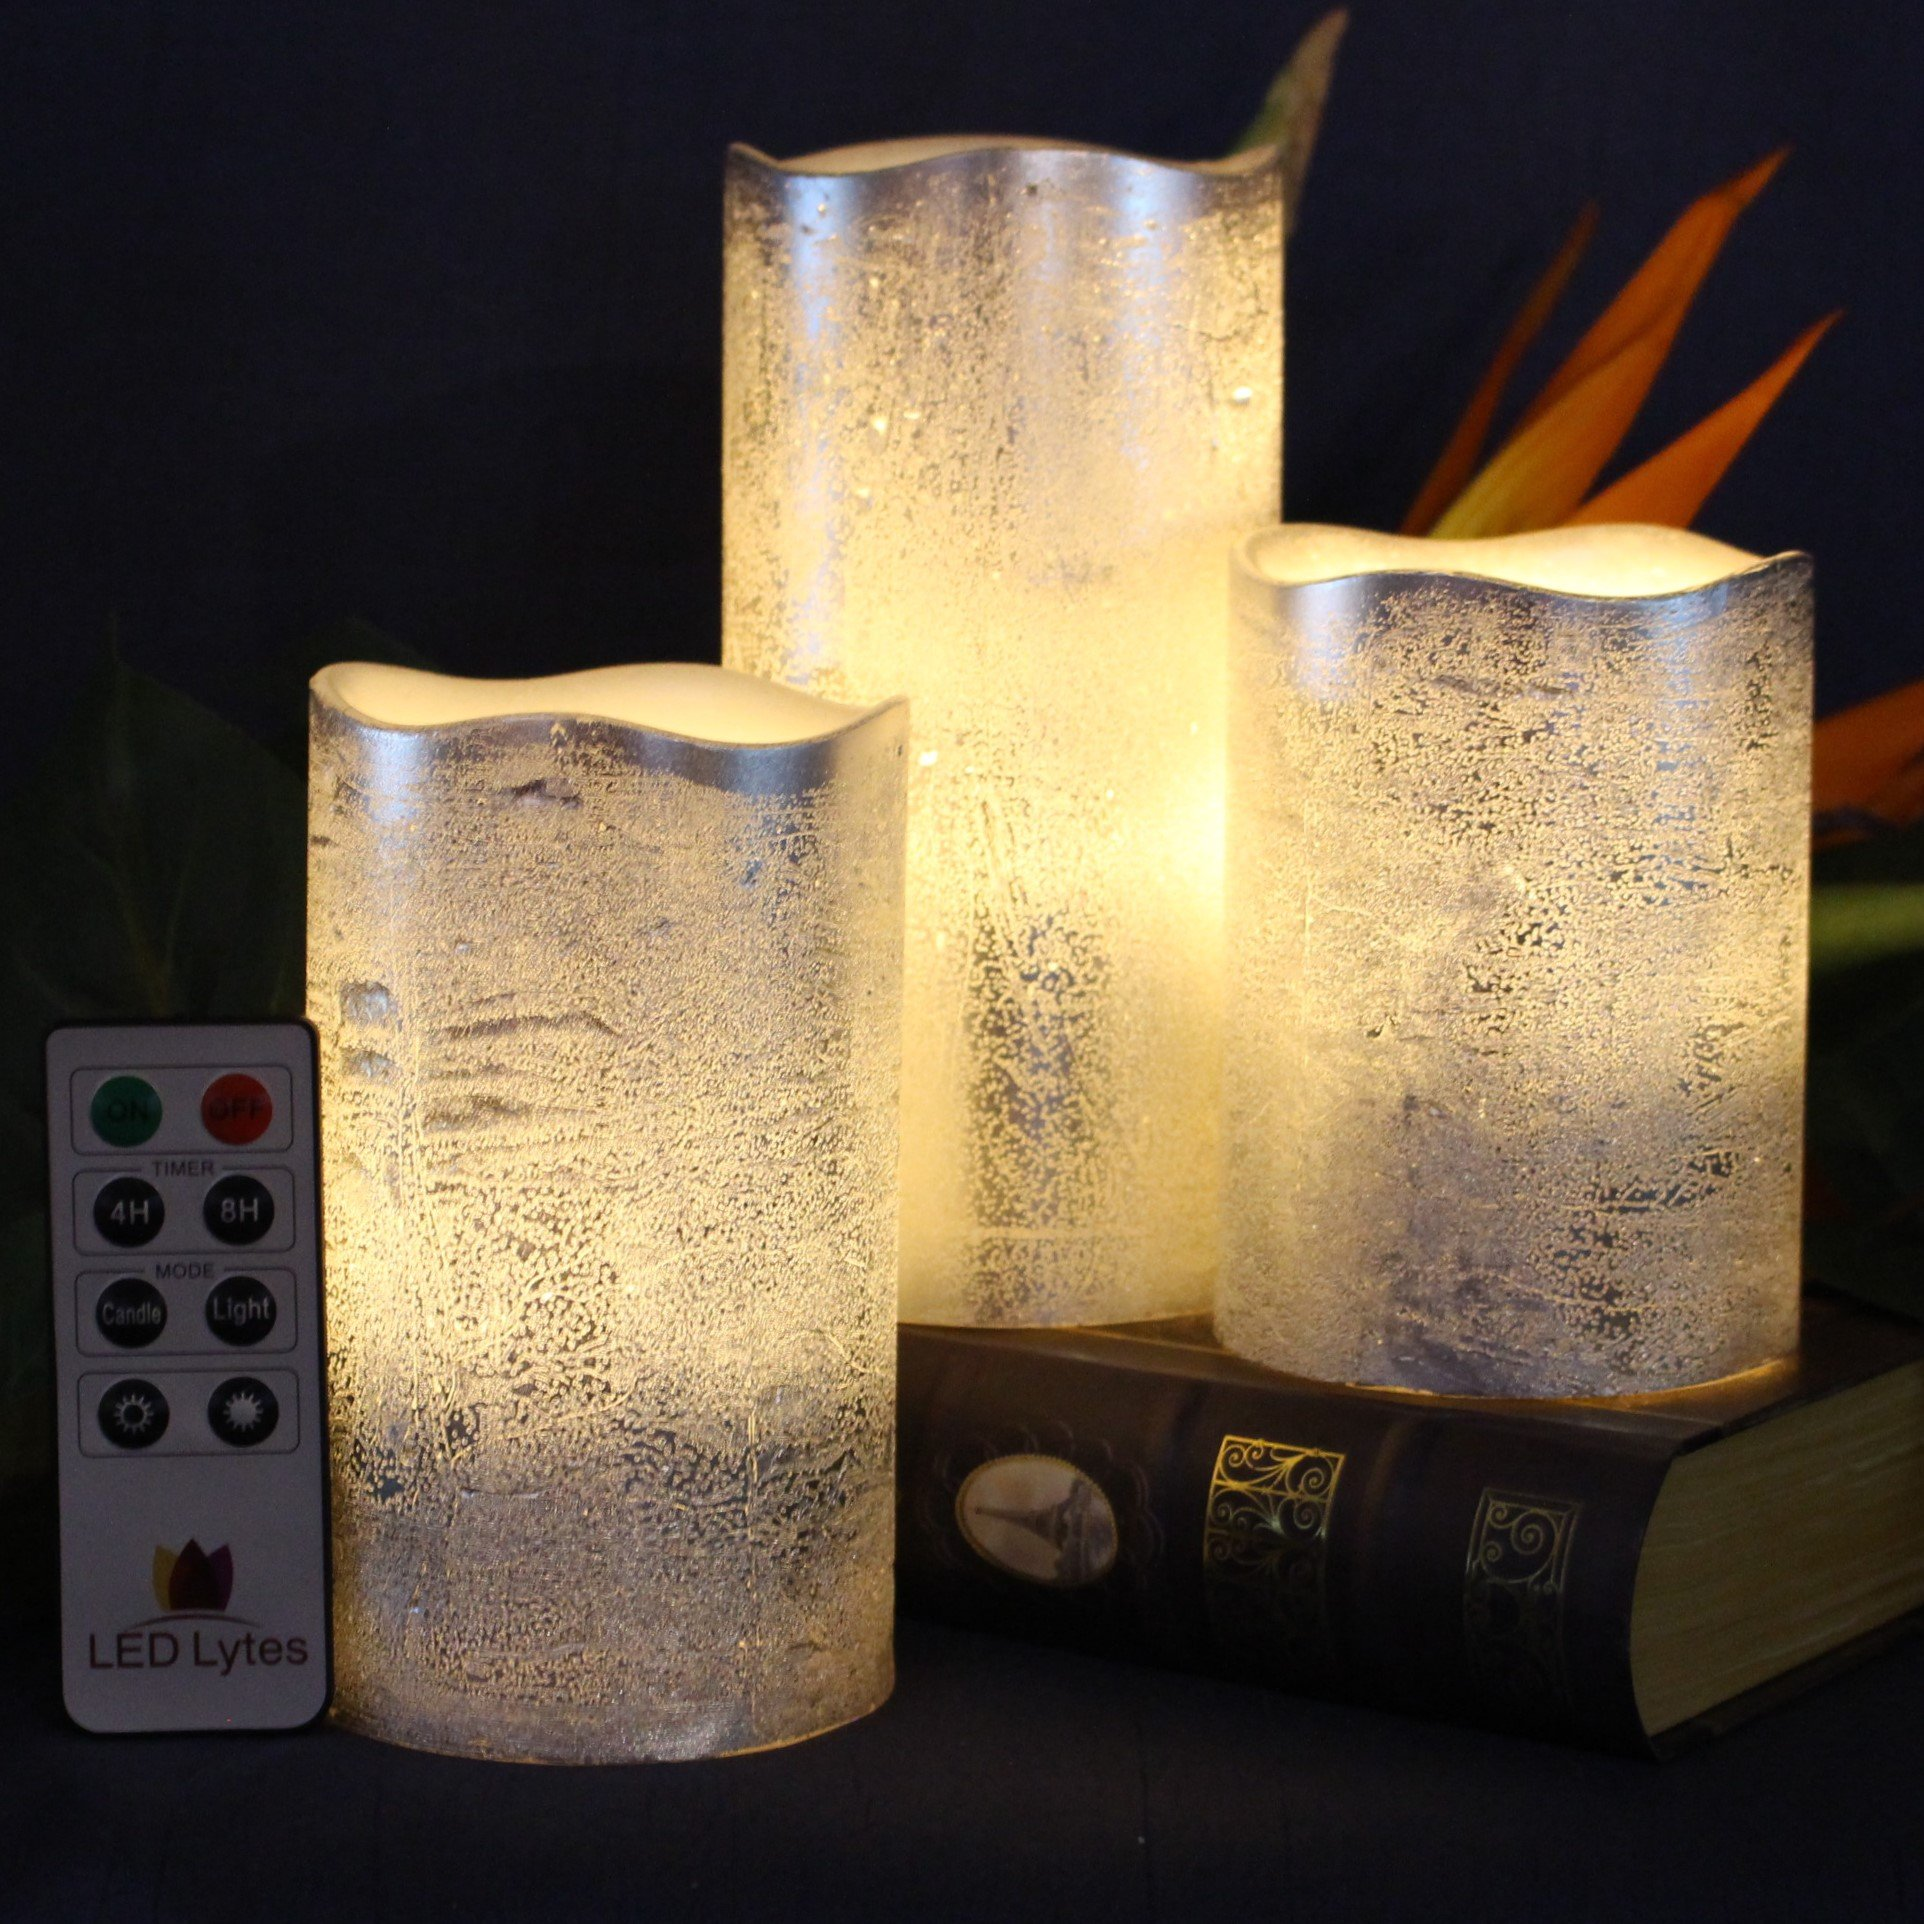 Battery Operated LED Flameless Candles - Set of 3 Round Rustic Silver Coated Ivory Wax with Warm White Flame Flickering LED Candles, auto-Off Timer Remote Control by LED Lytes by LED Lytes (Image #3)